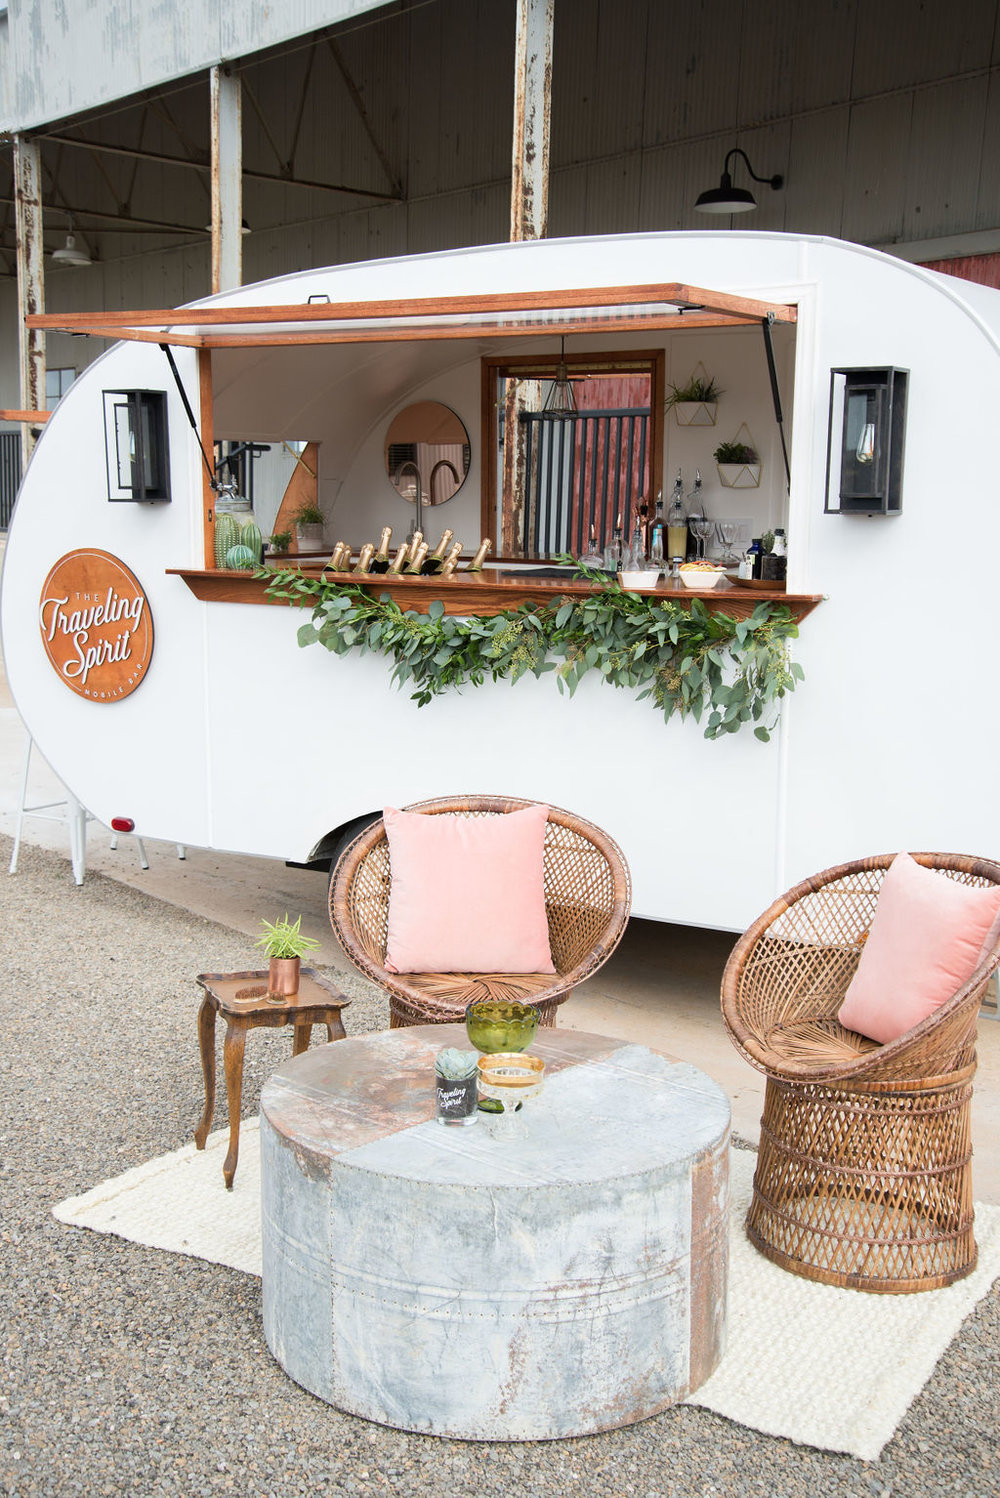 Camper Bar Rental - If you're looking for a complete experiential bar package, we can serve any of our beverage packages from our mobile bar! We also rent out our bar without bar services for events that do not need bartenders.Delivery within 30 miles of HoustonSetup & BreakdownCleaning